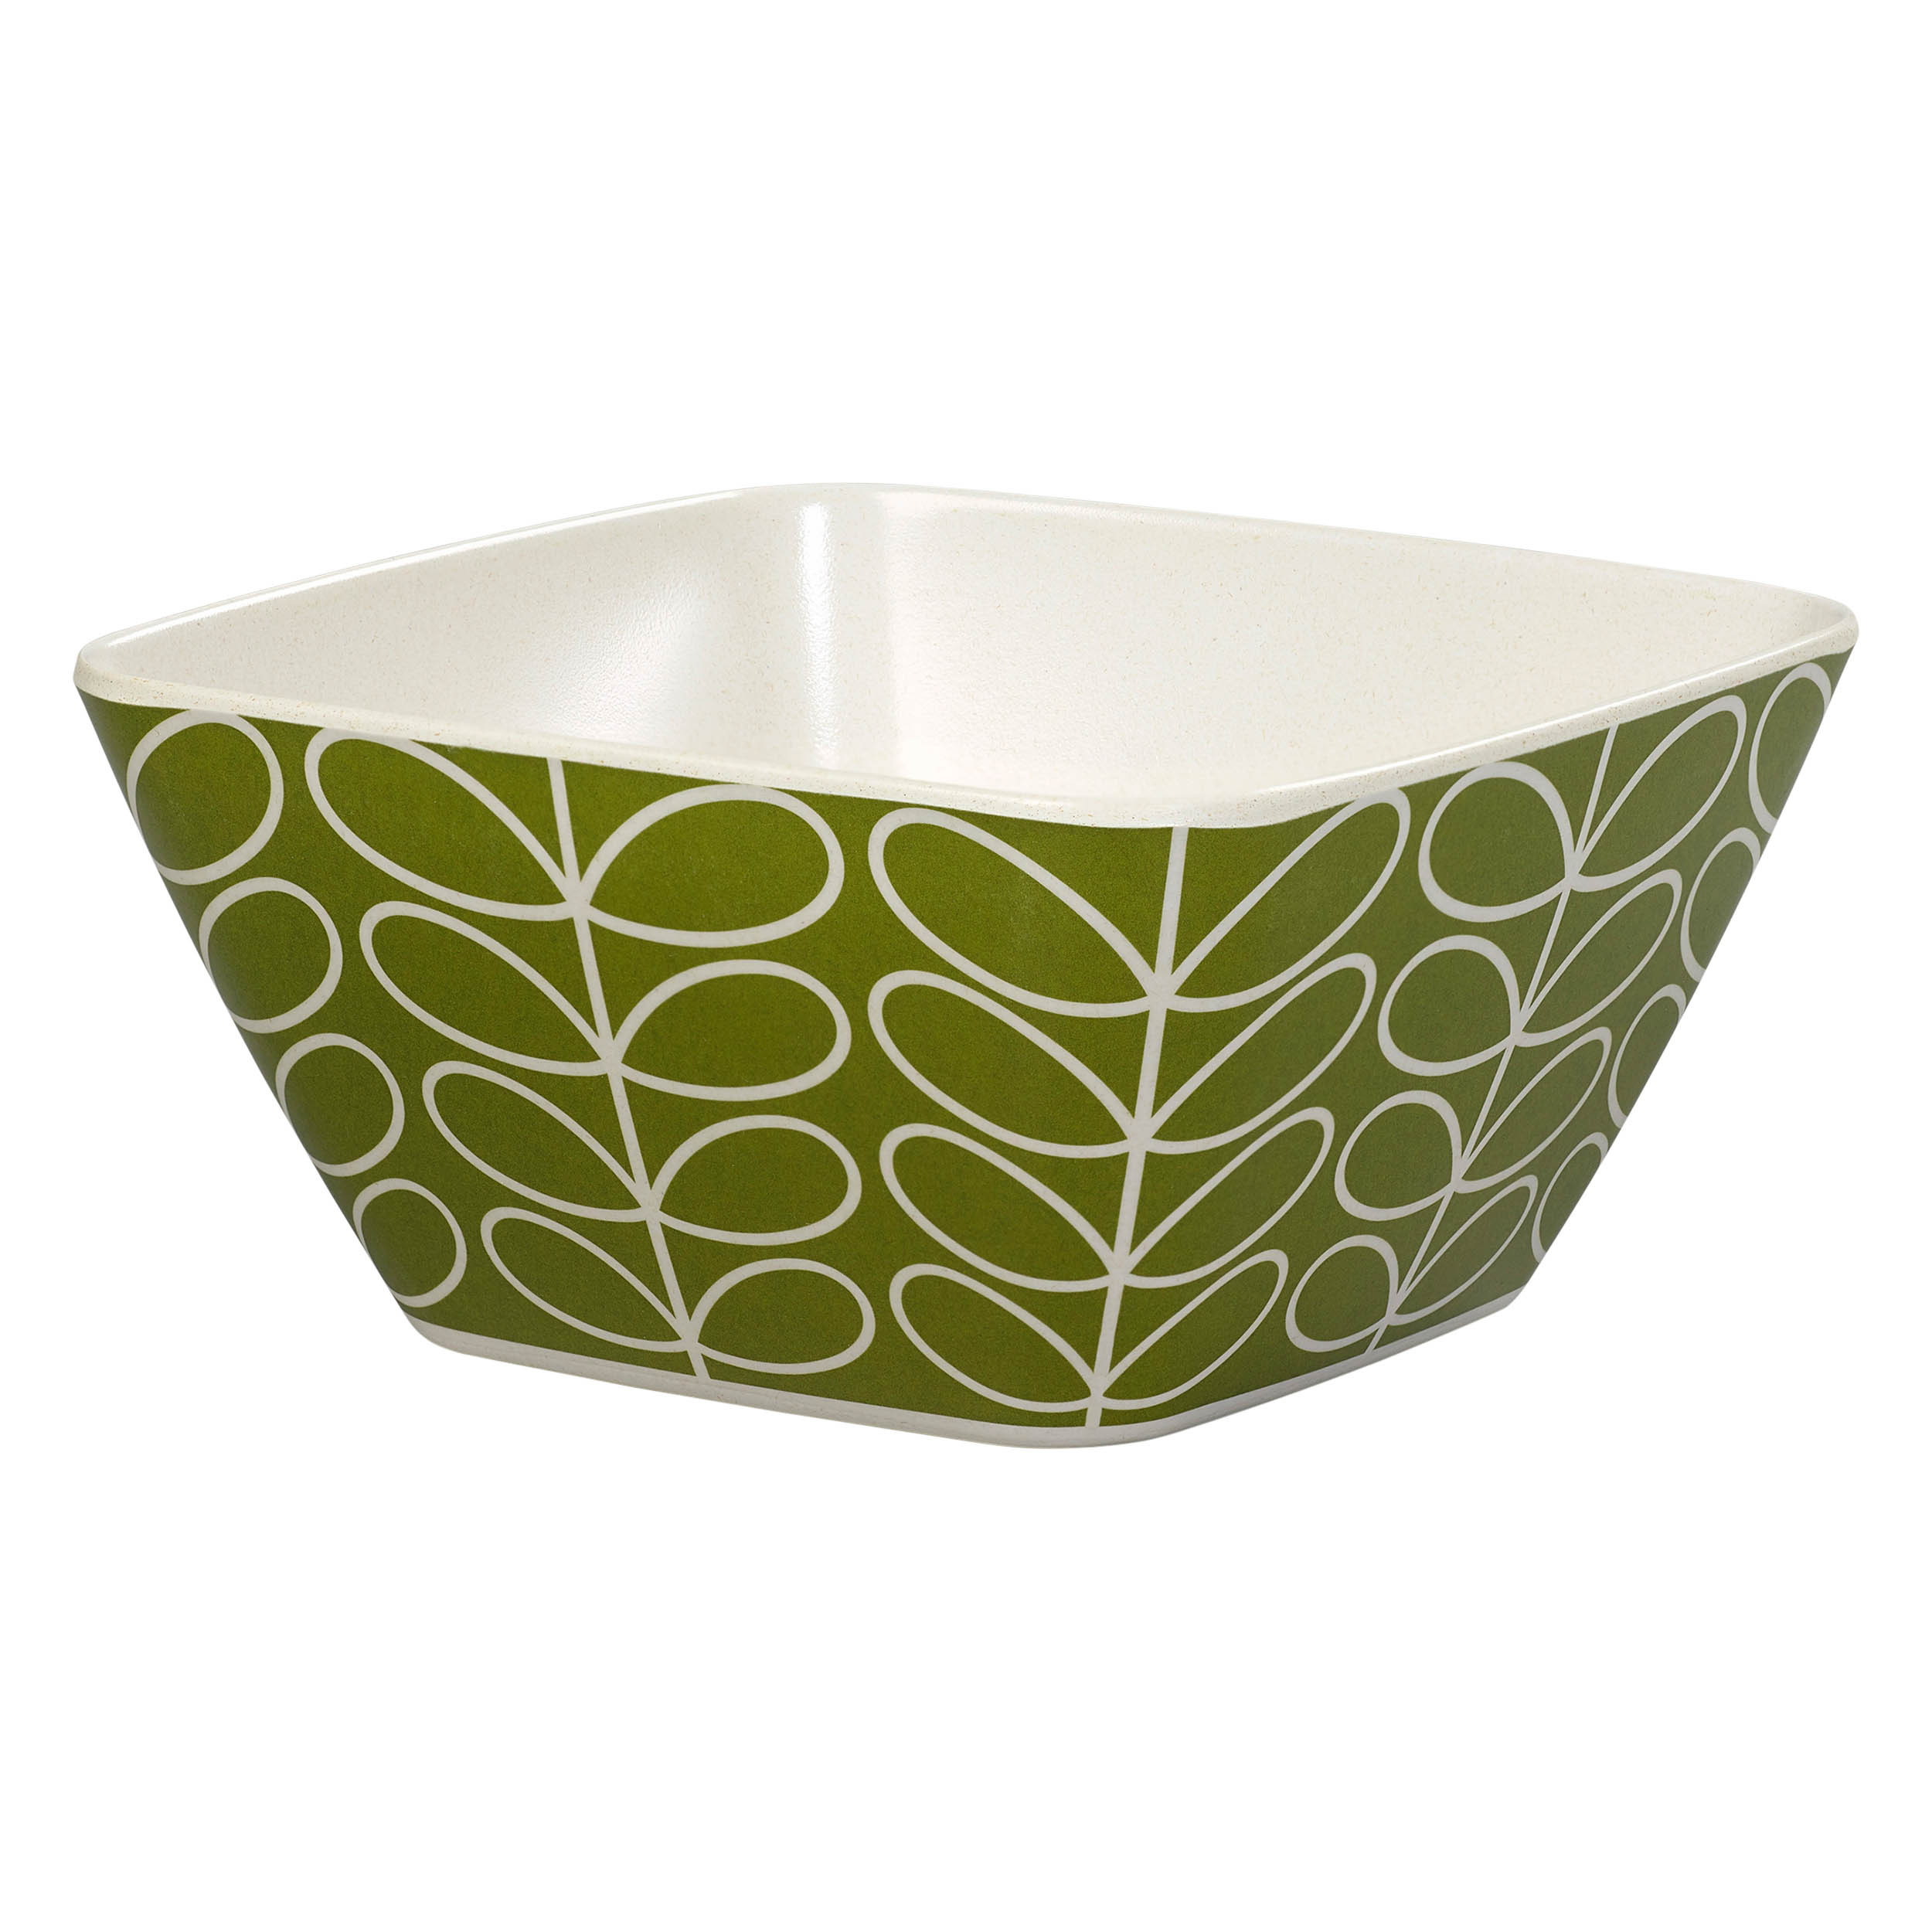 Bamboo Bowl, Linear Stem, Seagrass